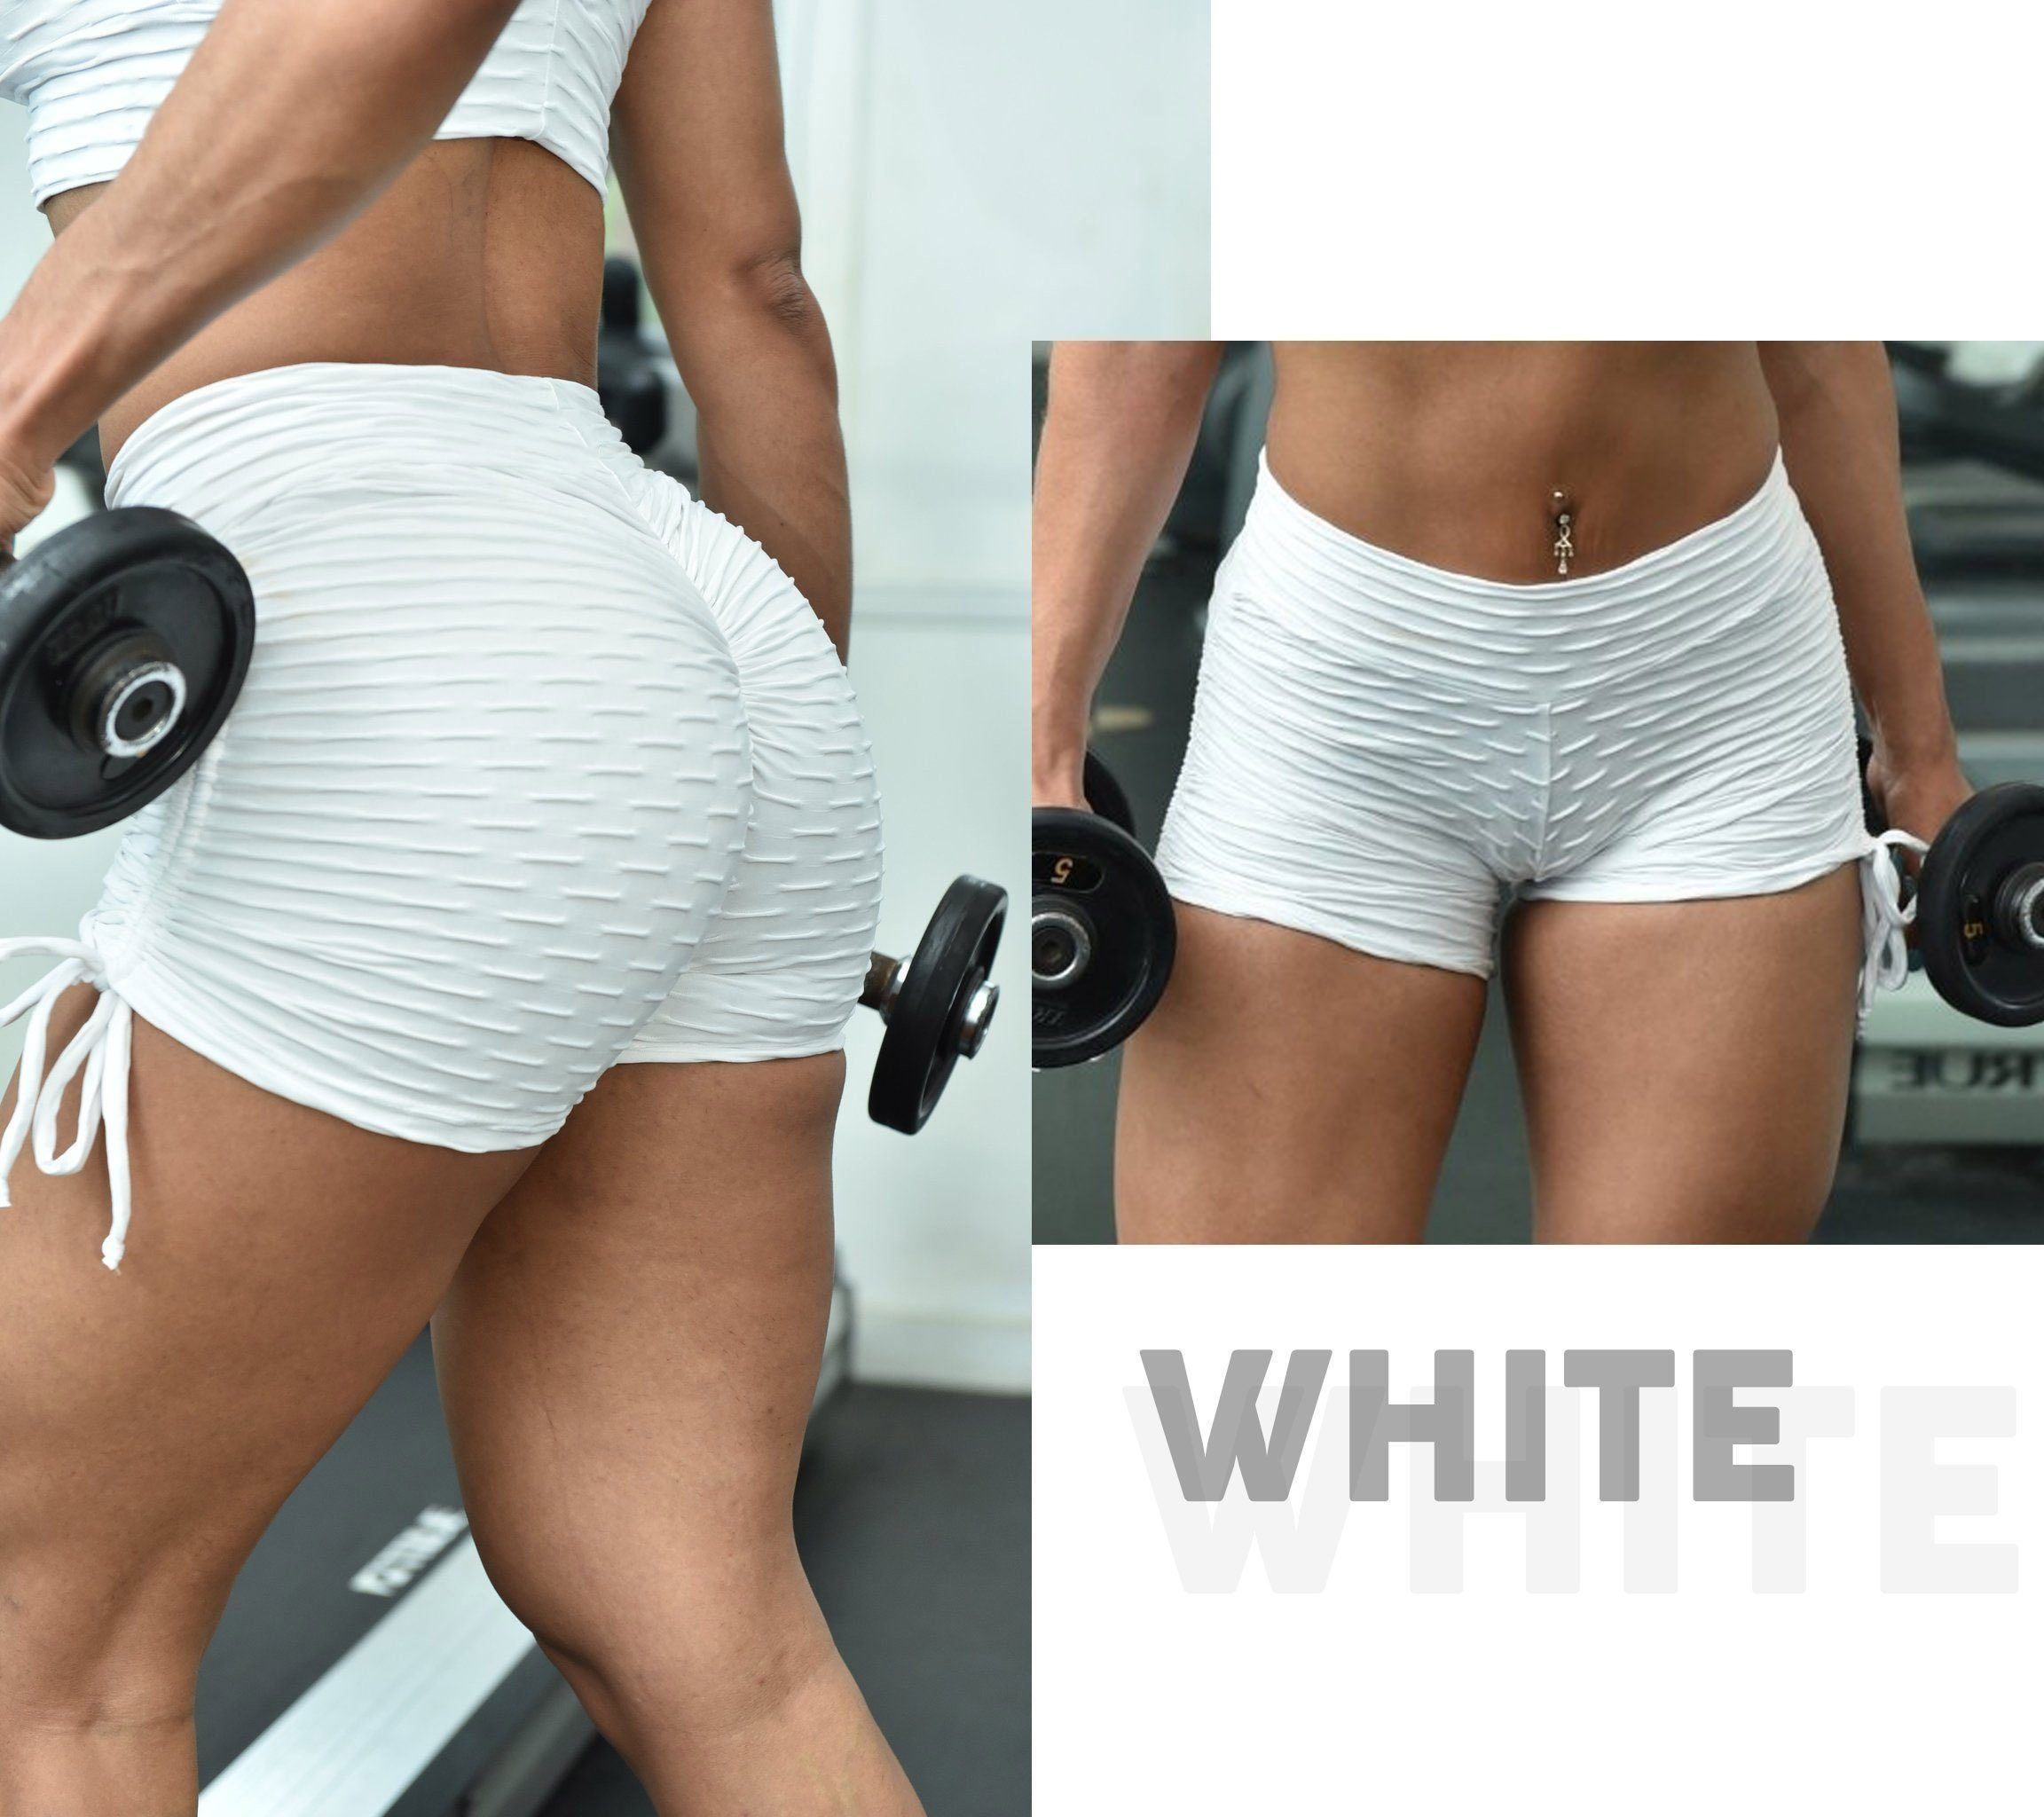 Anti-cellulite Textured Push Up Shorts